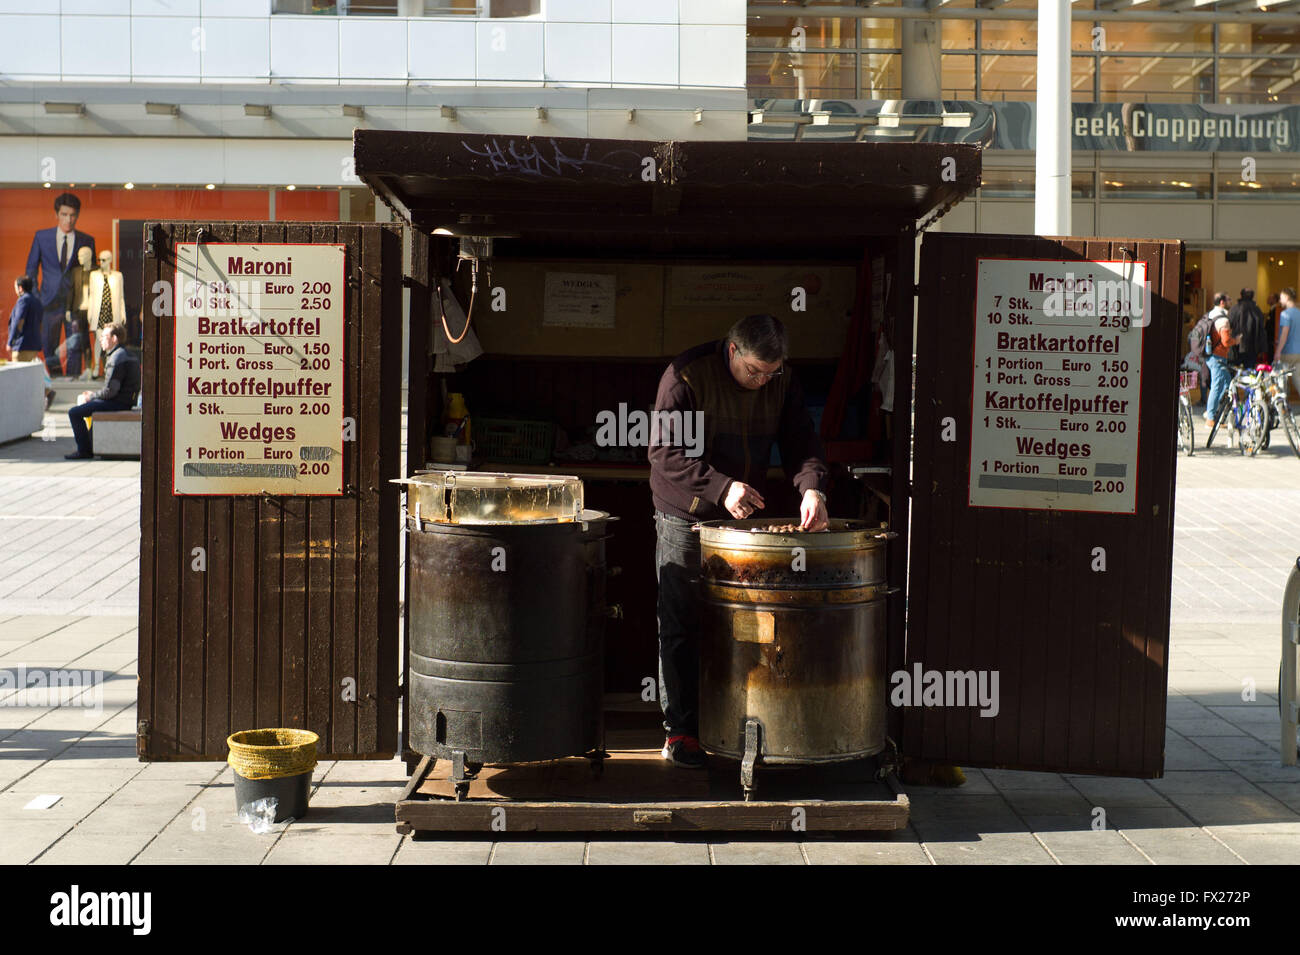 Failing to sell chestnuts on a hot day. Mariahilfer Strase Vienna Stock Photo